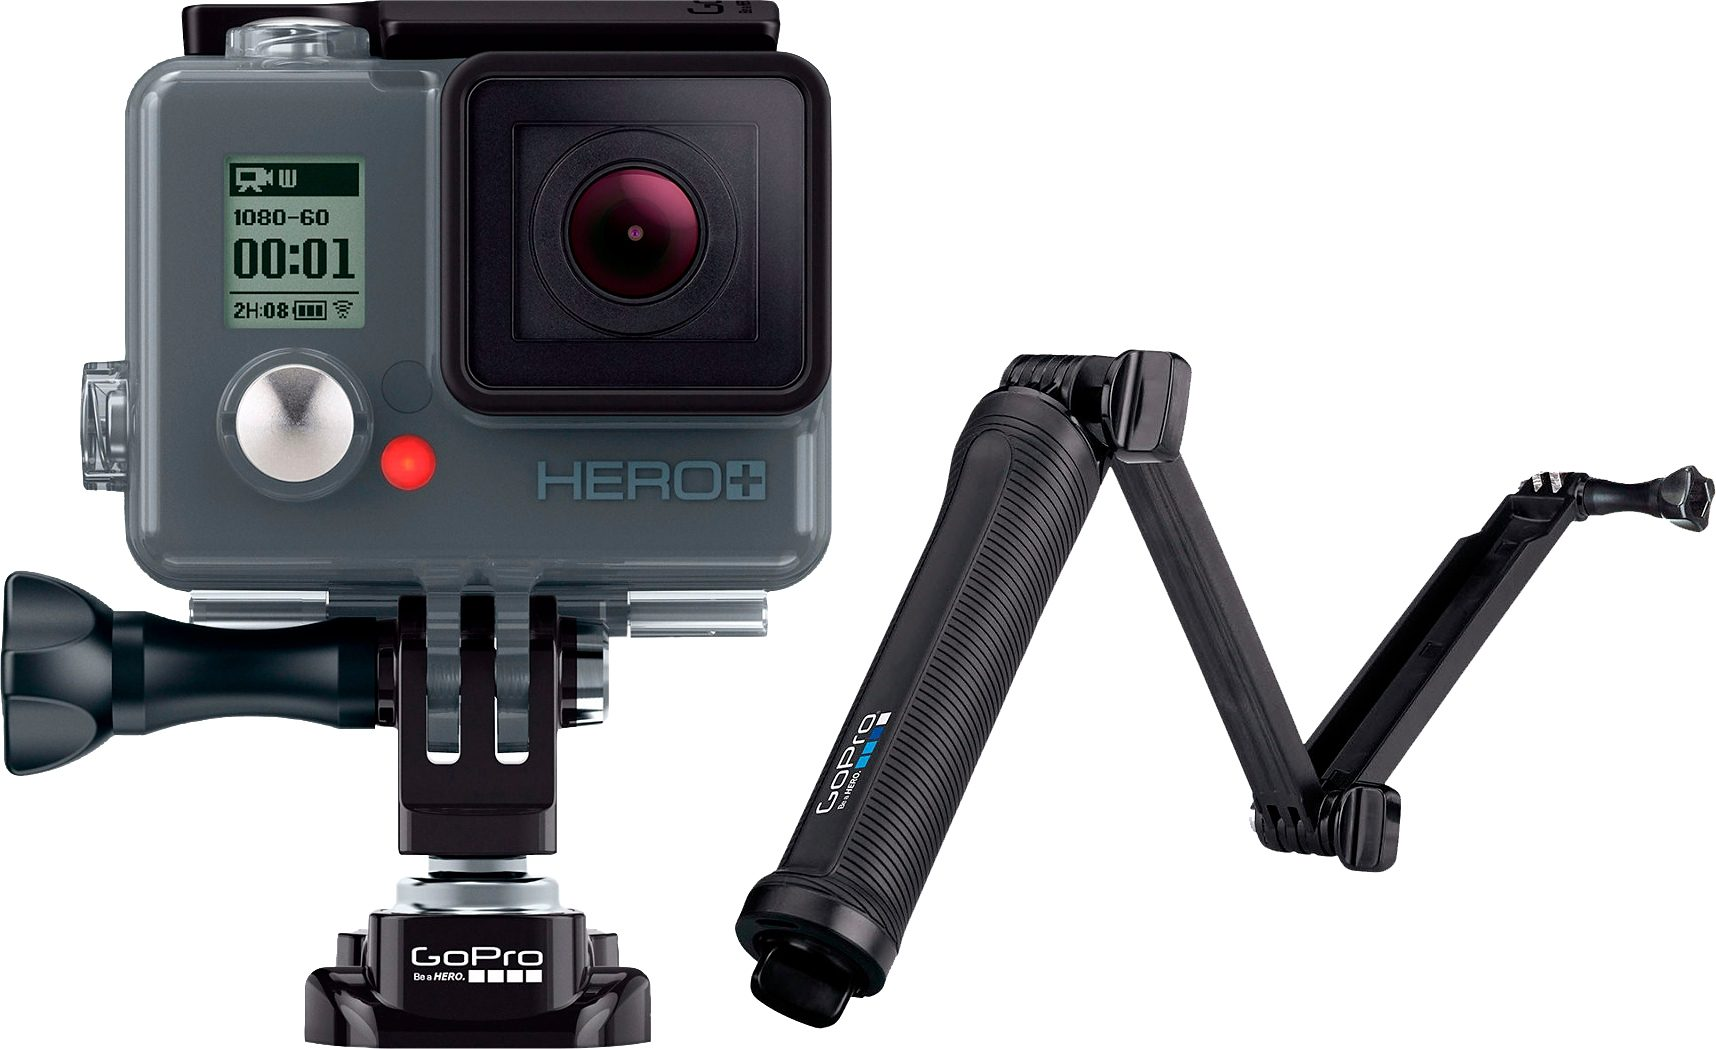 GoPro HERO+ LCD & 3-Way Stativ 1080p (Full HD) Actioncam, WLAN, Bluetooth